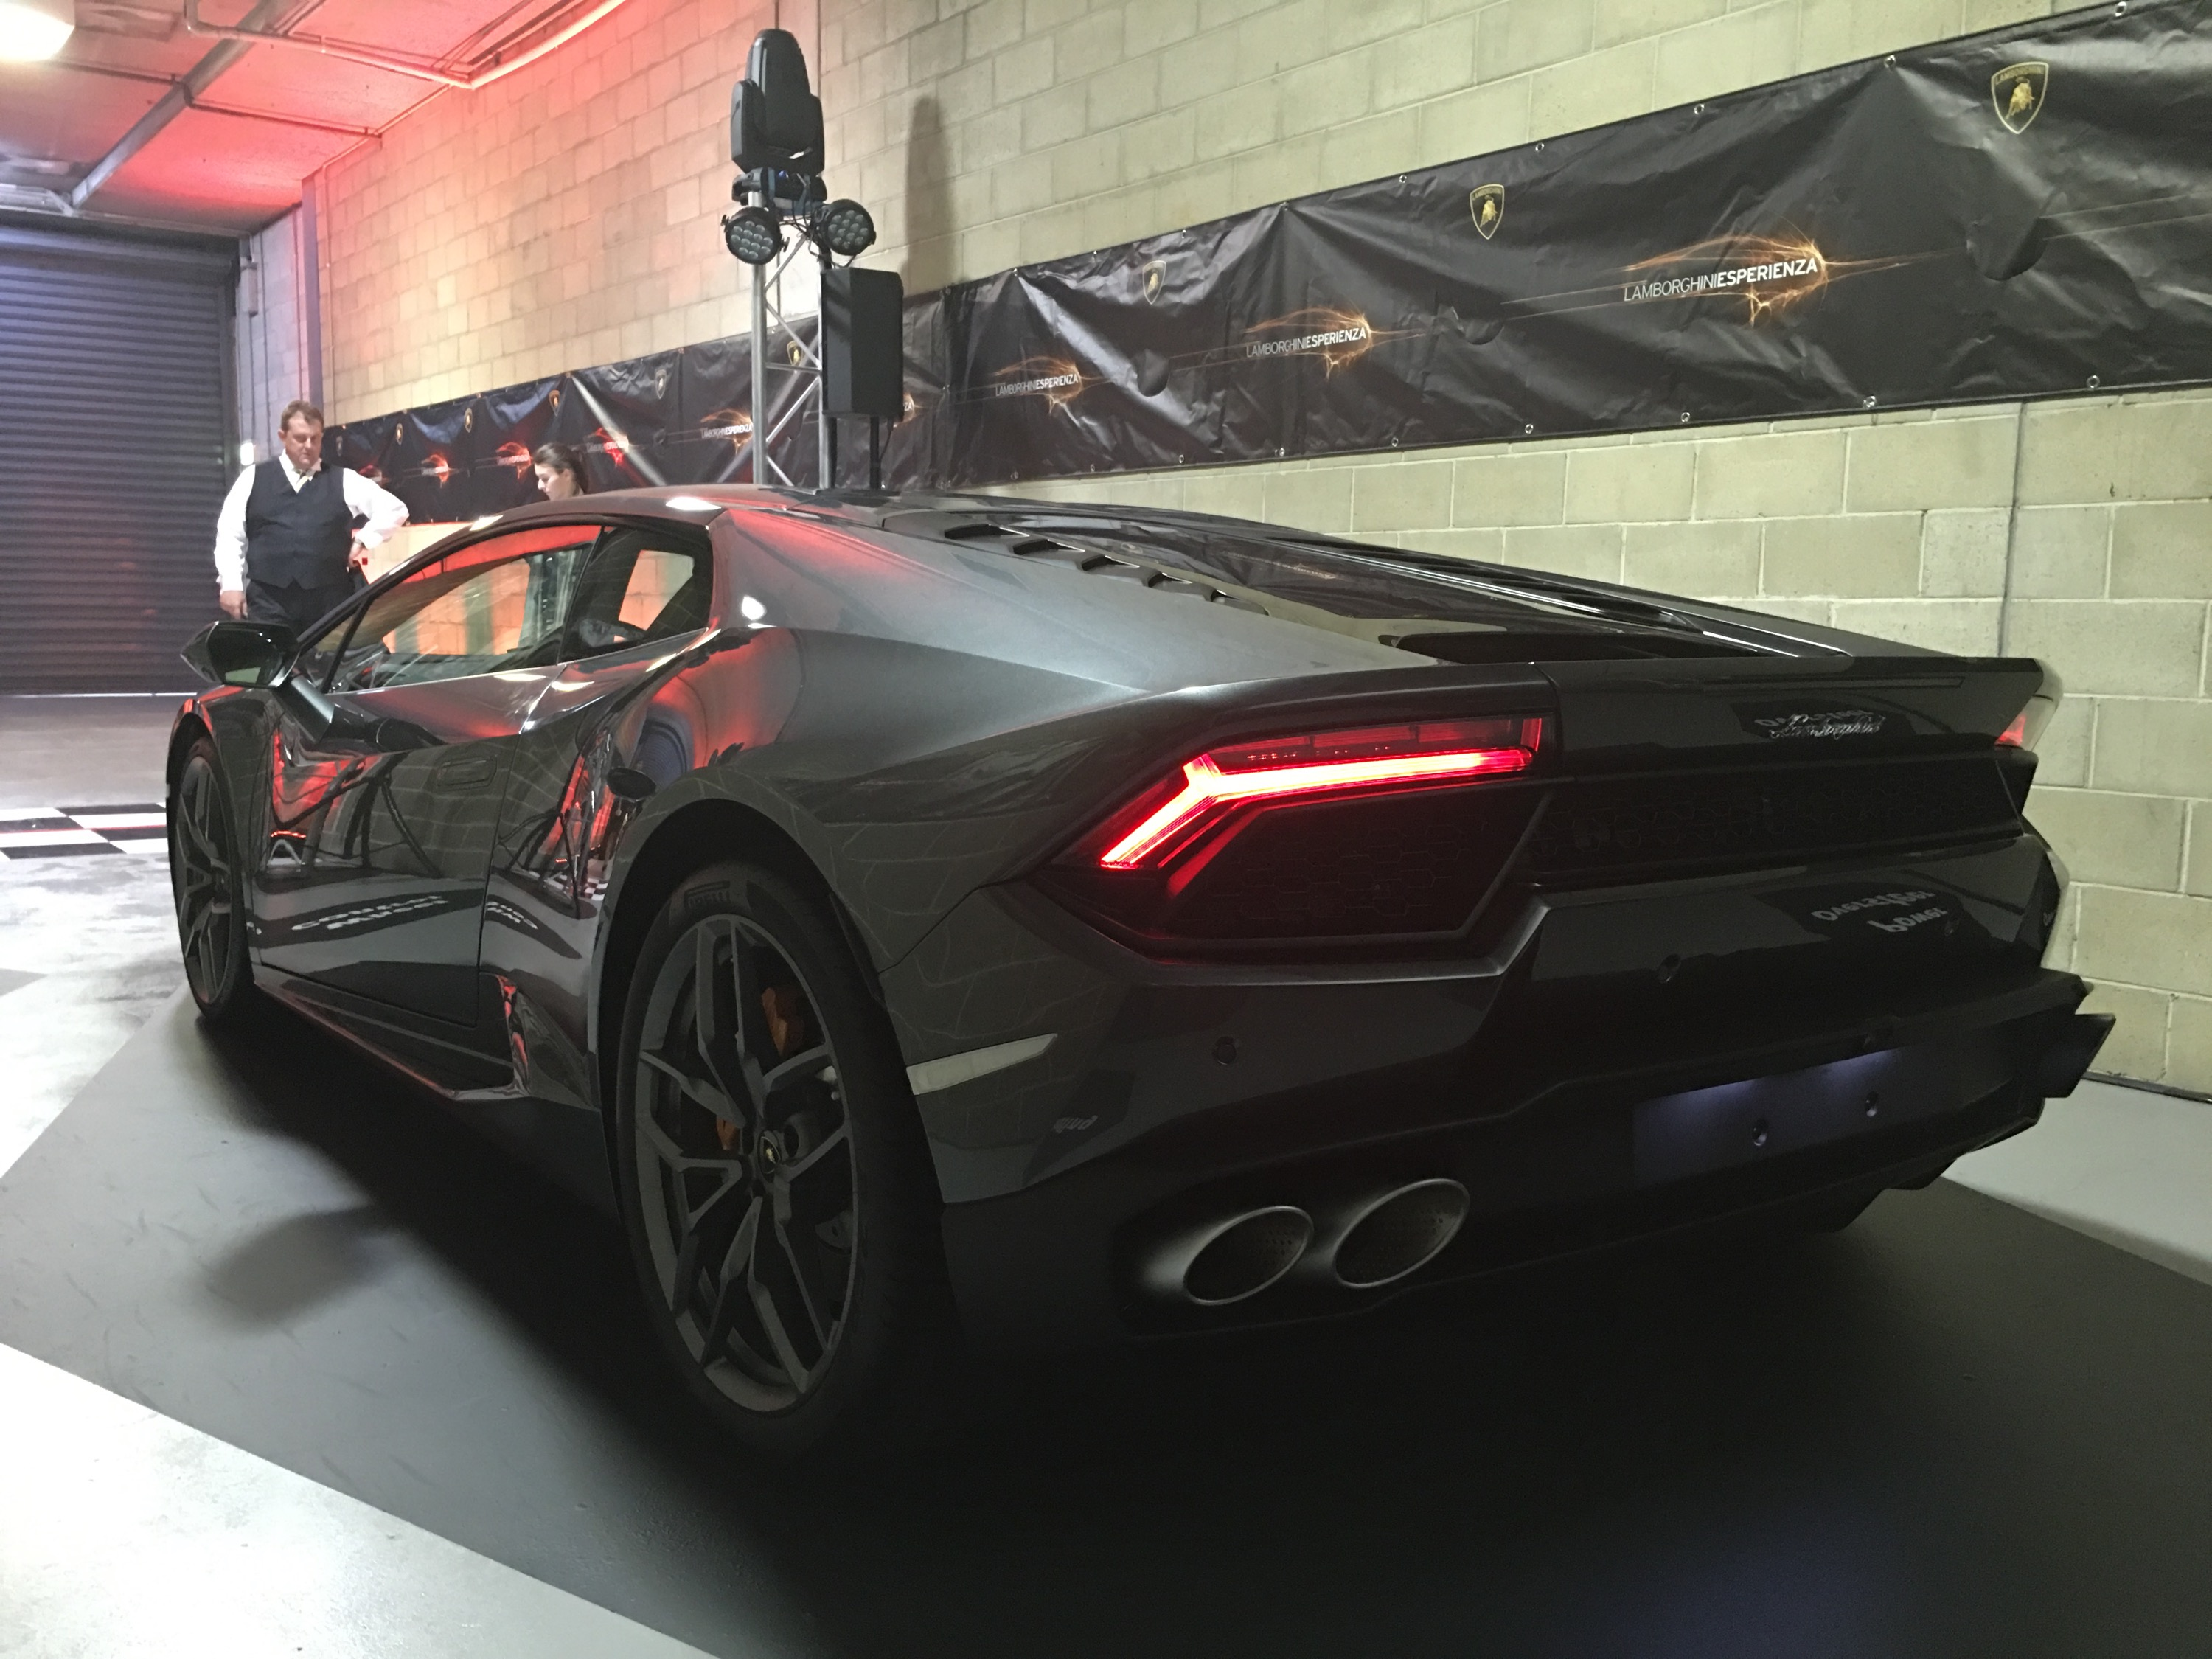 Fantastic Lamborghini Huracan LP5802 Rearwheeldrive Coupe Unveiled In Australia  Ph